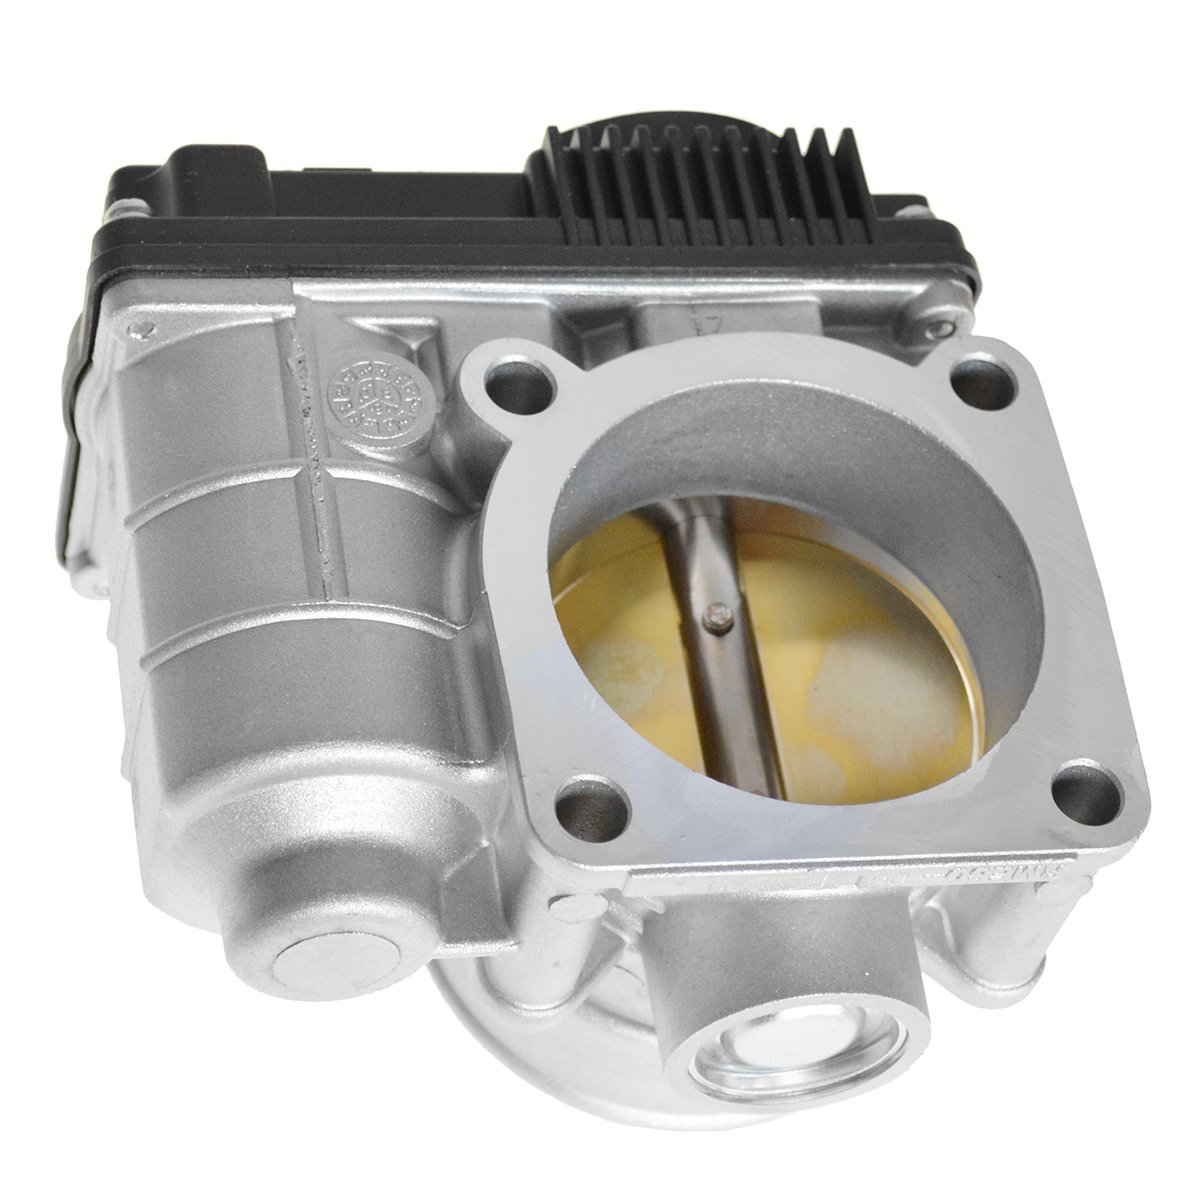 Electronic Throttle Body Assembly for 02-06 Nissan Altima Sentra X-Trail 2.5L by 1A Auto